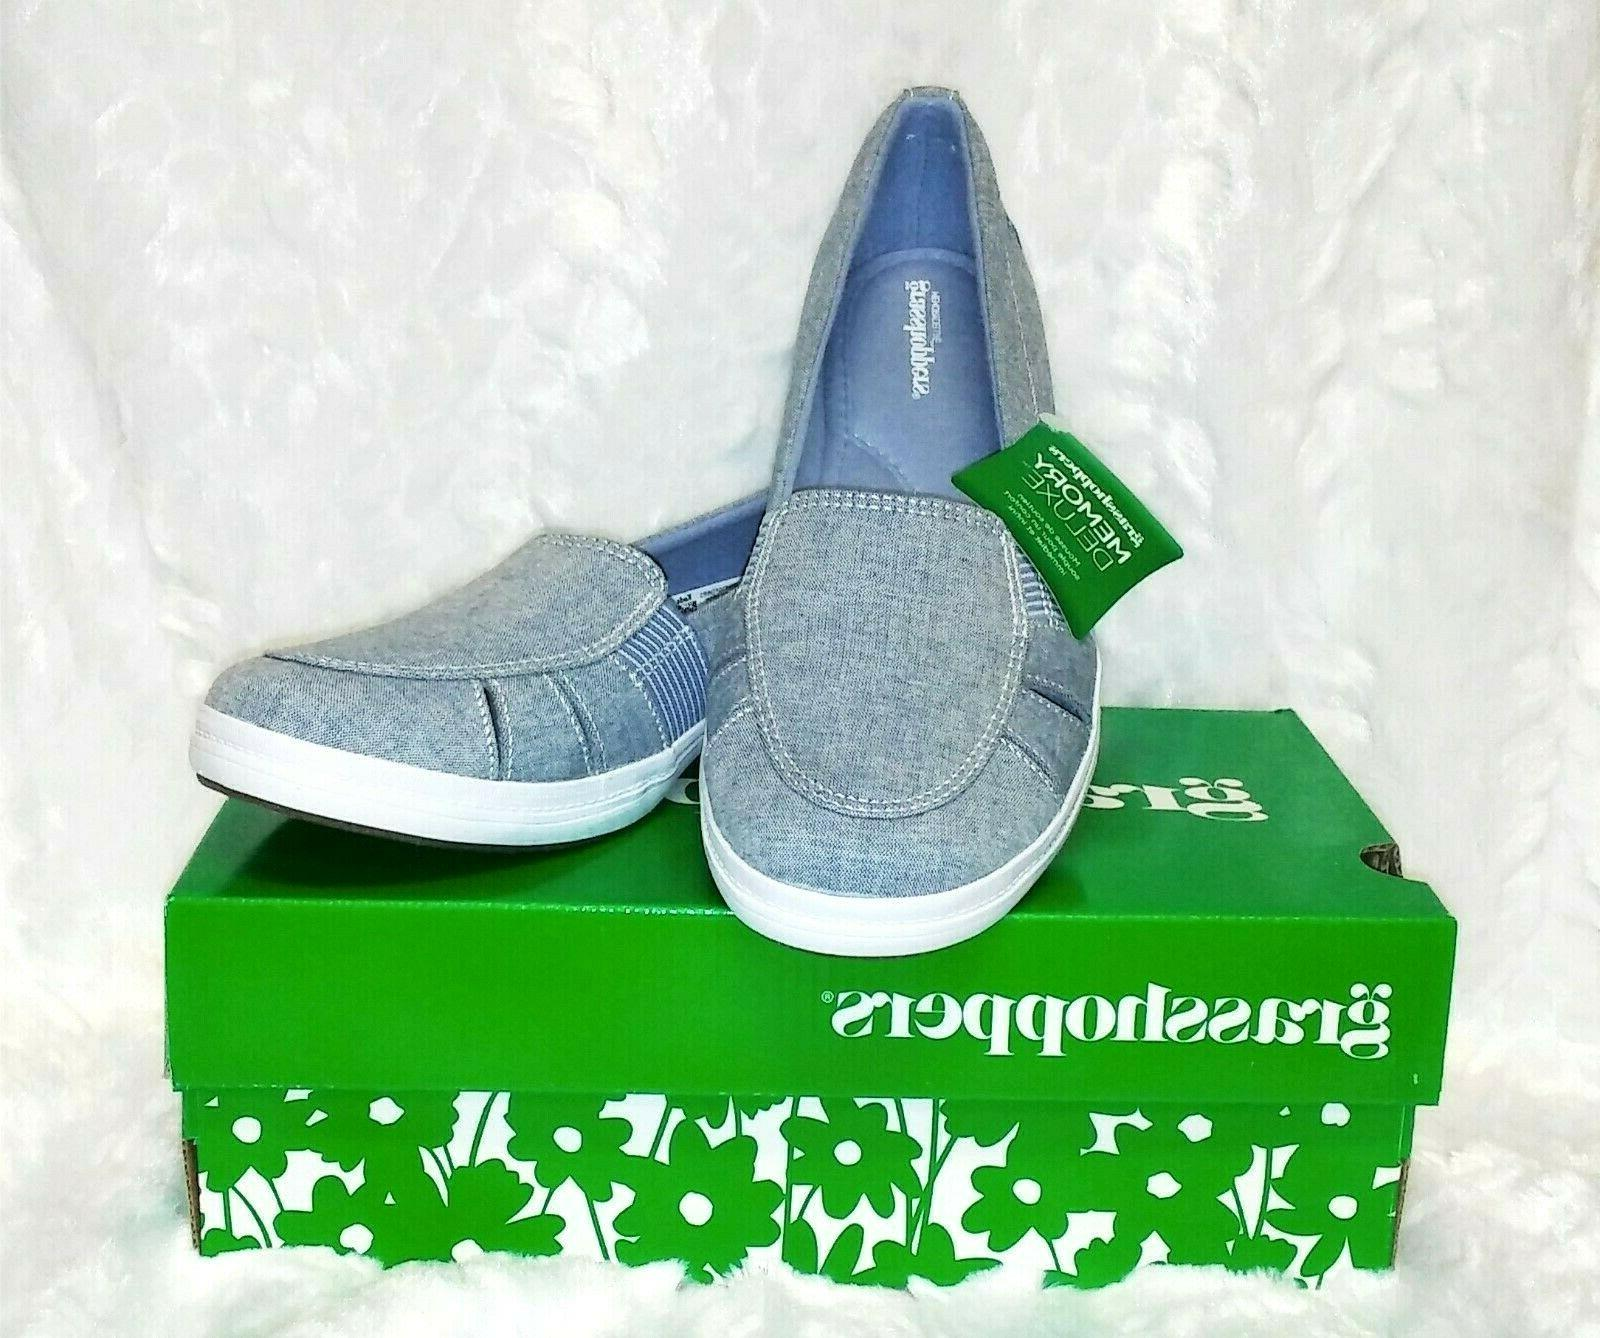 Grasshoppers Keds Chambray Blue Loafers Shoes 8W NIB